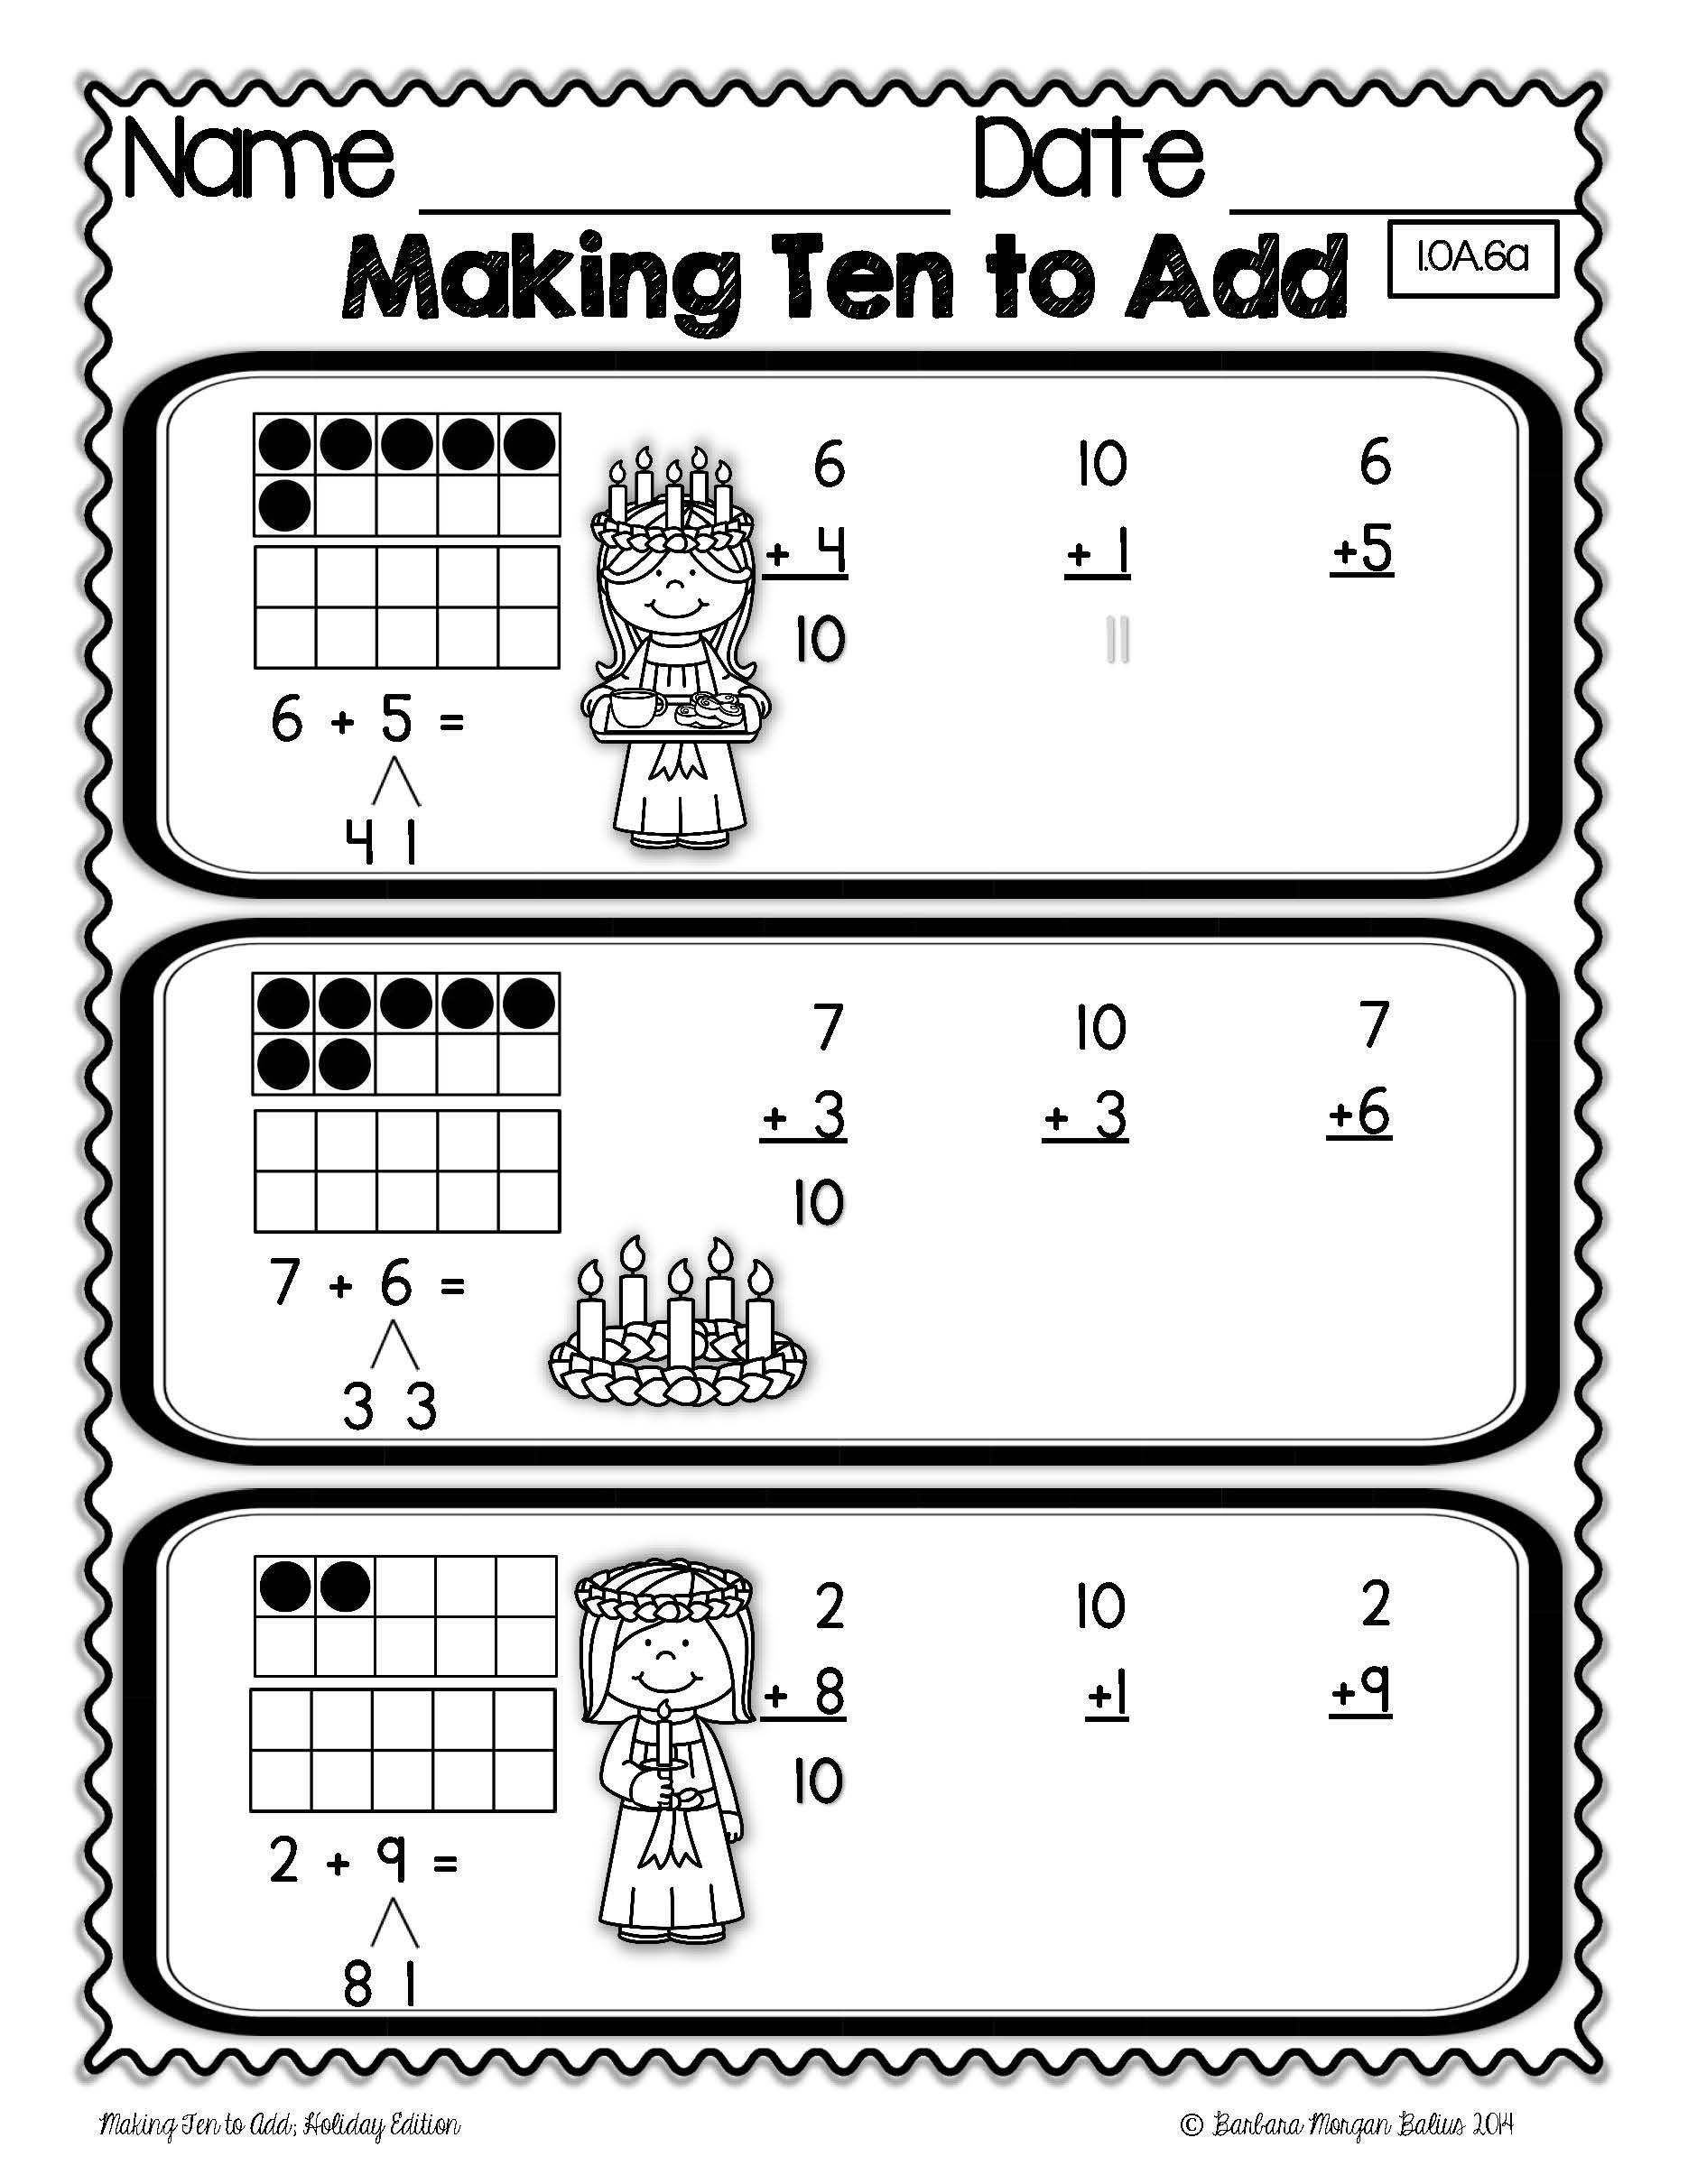 "Students ""make ten"" by breaking apart a smaller number and then adding the remainder of the broken-apart number to a ten. Working with a ten in addition is much easier than working with any other number. Making ten by breaking apart smaller numbers is crucial to understanding place value its representation and the relationship between numbers. All students need lots of practice with this skill in order to competently use it going forward."